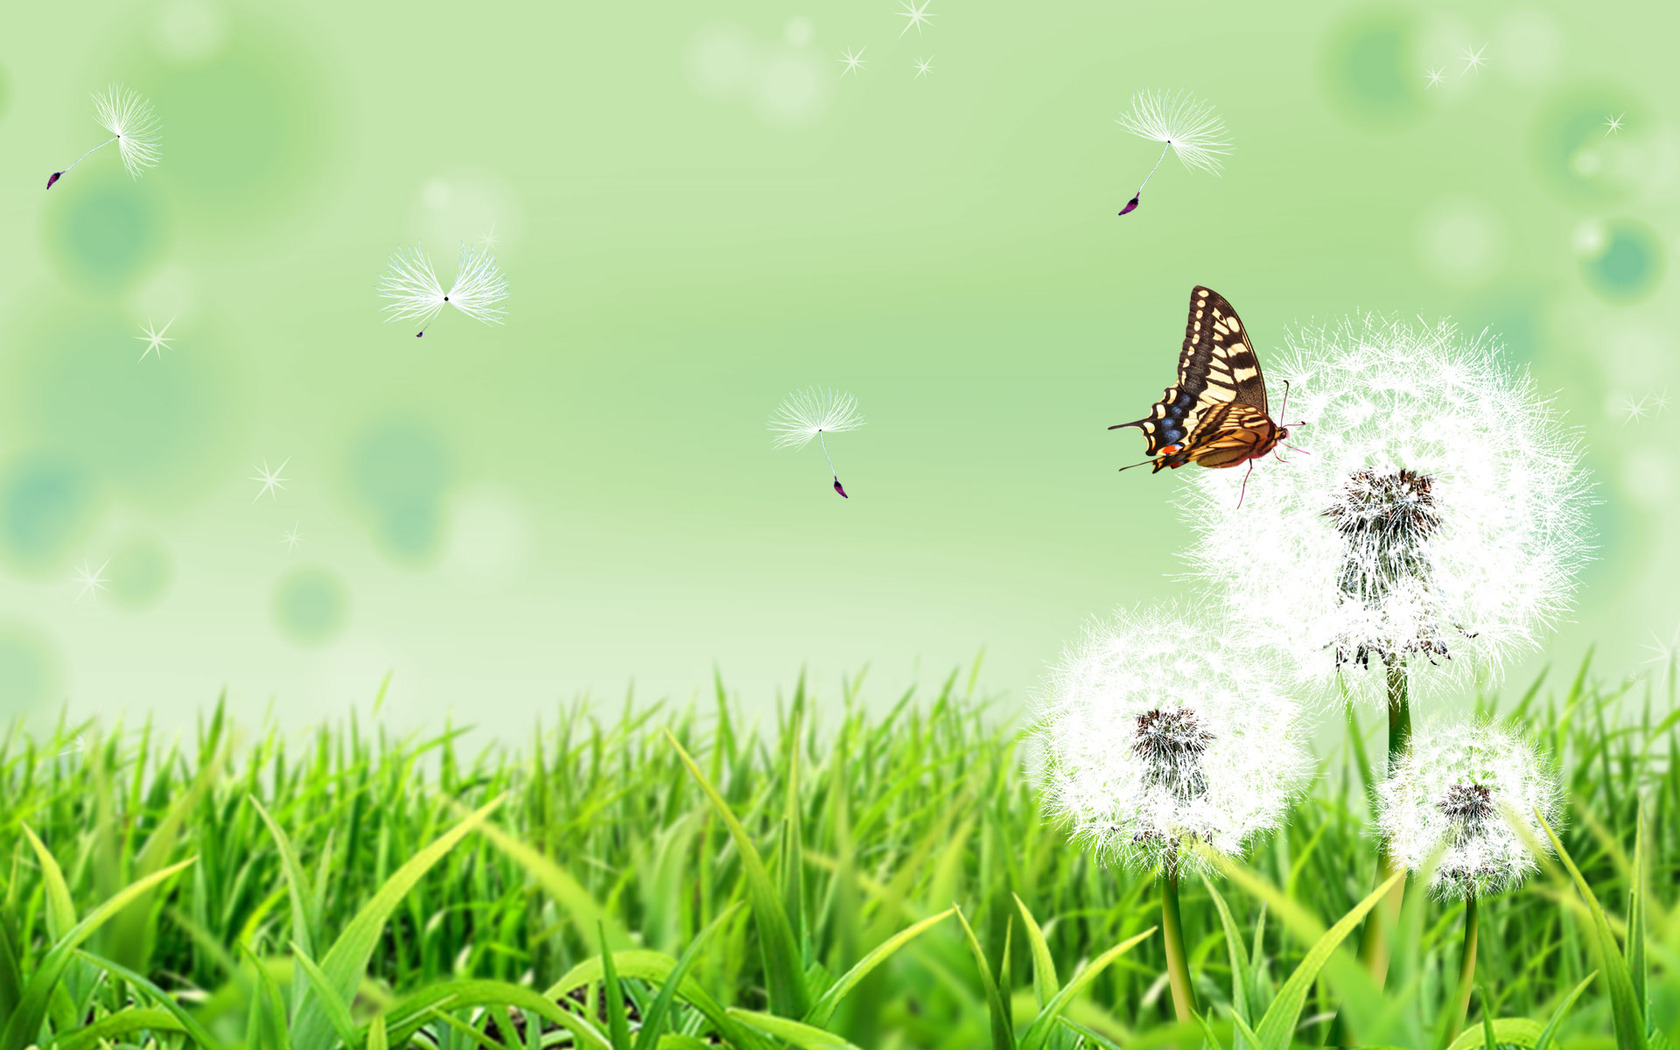 Download Butterfly on a dandelion wallpaper 1680x1050